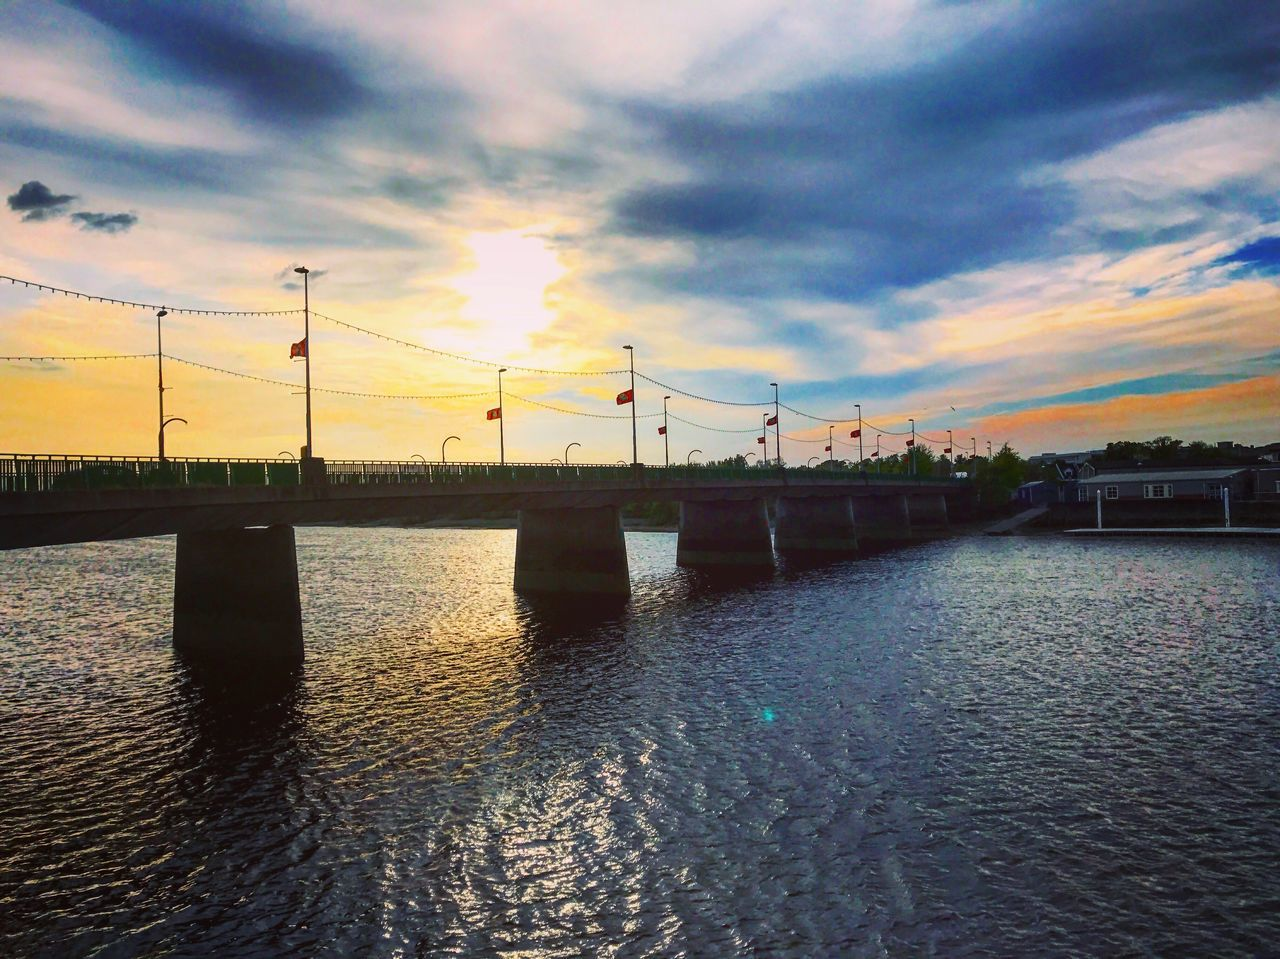 Ireland Spring Springtime Sunset Limerick Bridge - Man Made Structure River Riverview Sky Beautiful Beauty In Nature